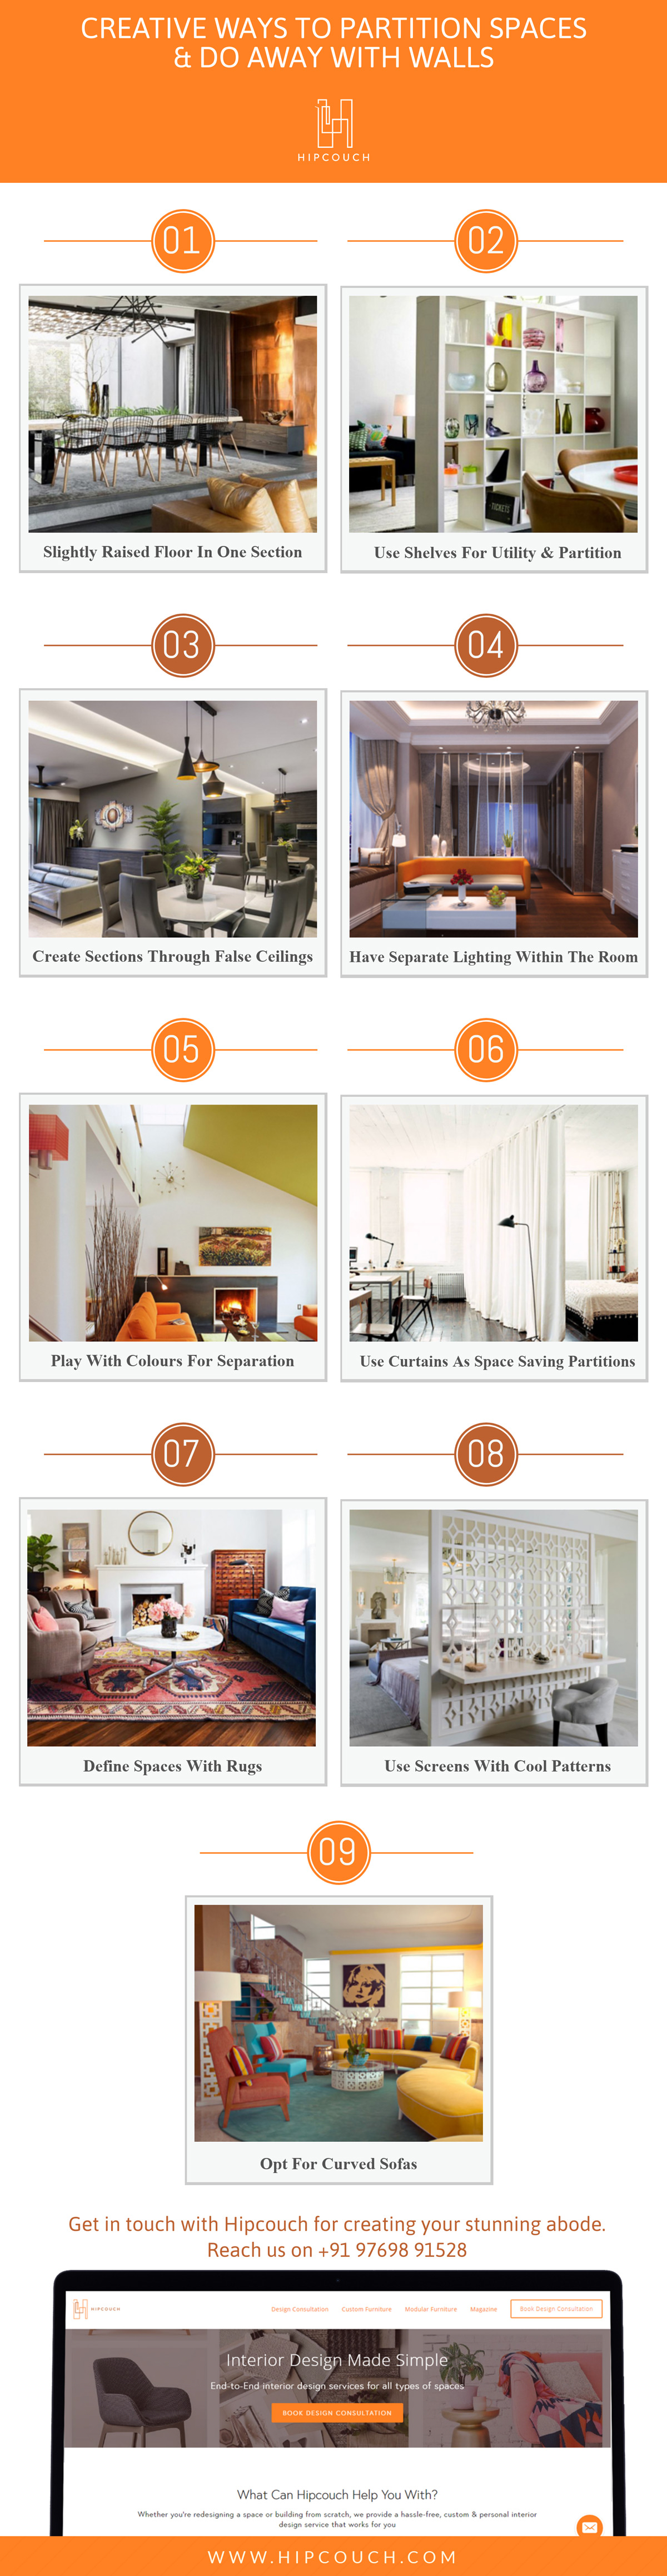 Doing Away With Walls: Creative Ways to Partition Spaces